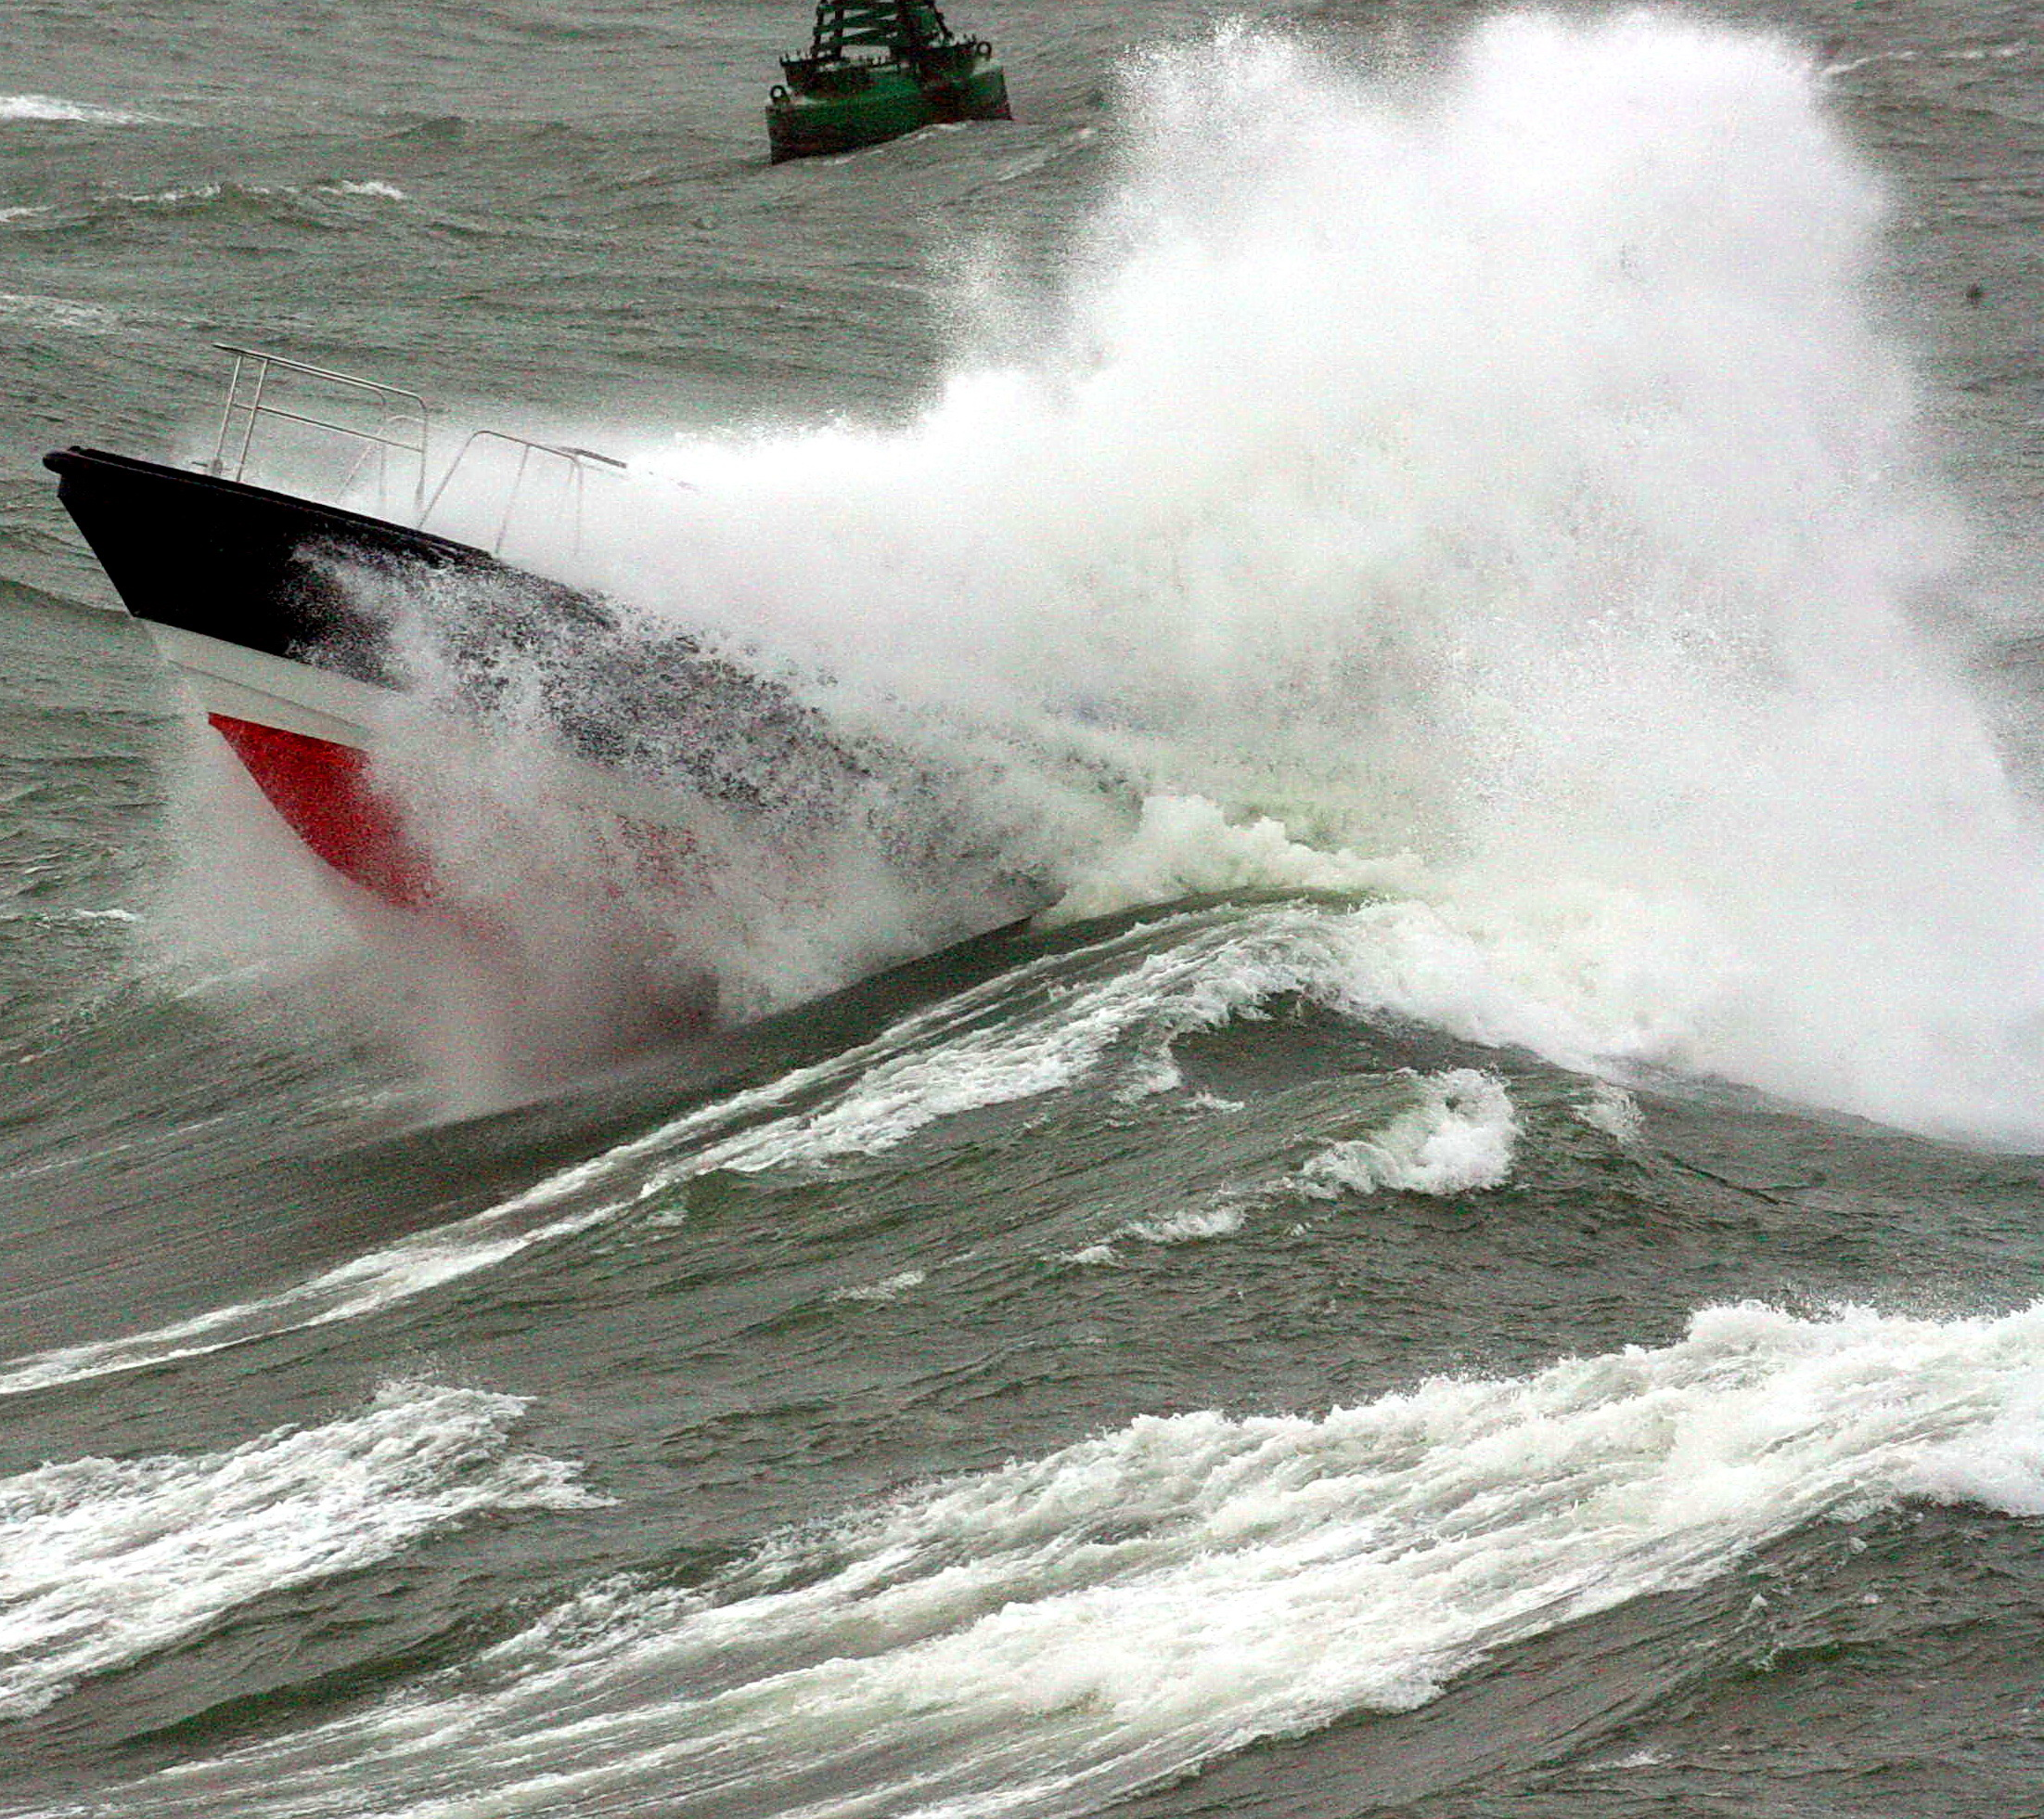 Pilot boat through wave 4